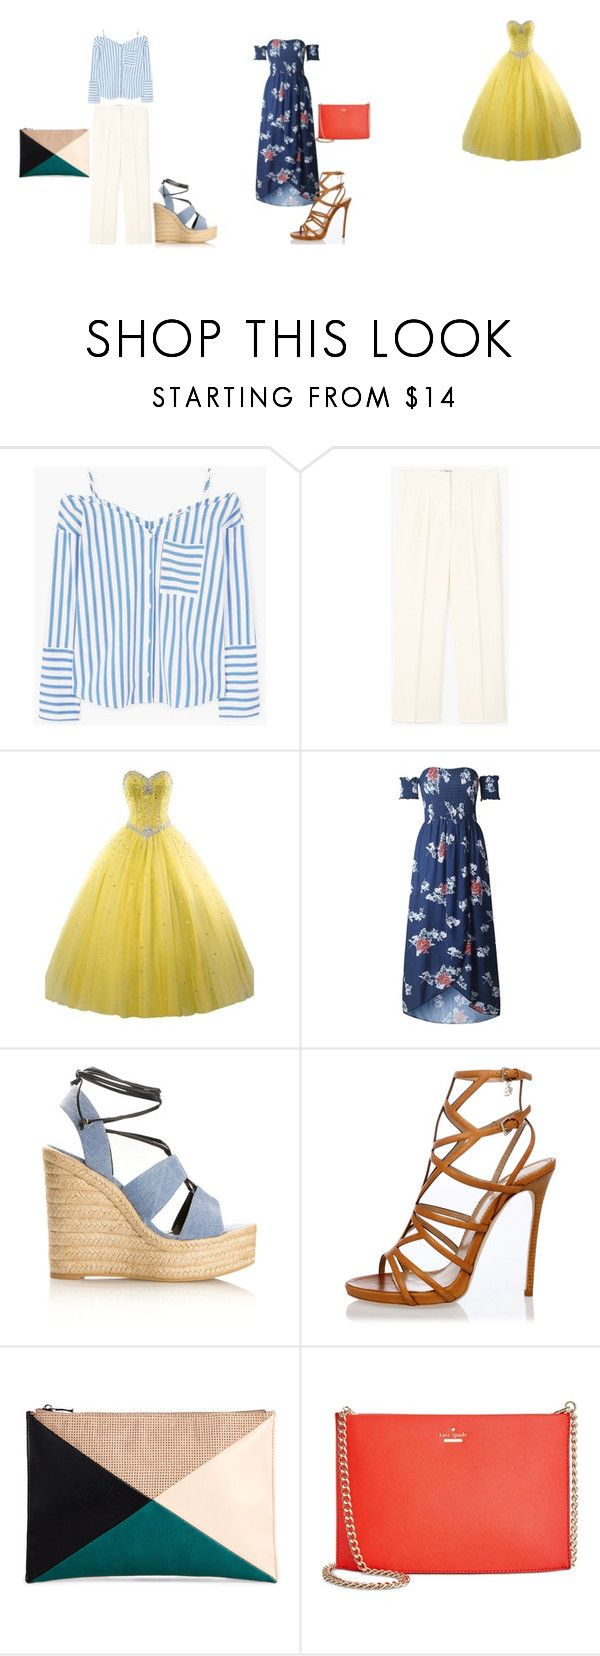 """""""Tenue pour Johanna"""" by clara-boudon on Polyvore featuring mode, MANGO, Yves Saint Laurent, Dsquared2, Sole Society et Kate Spade"""